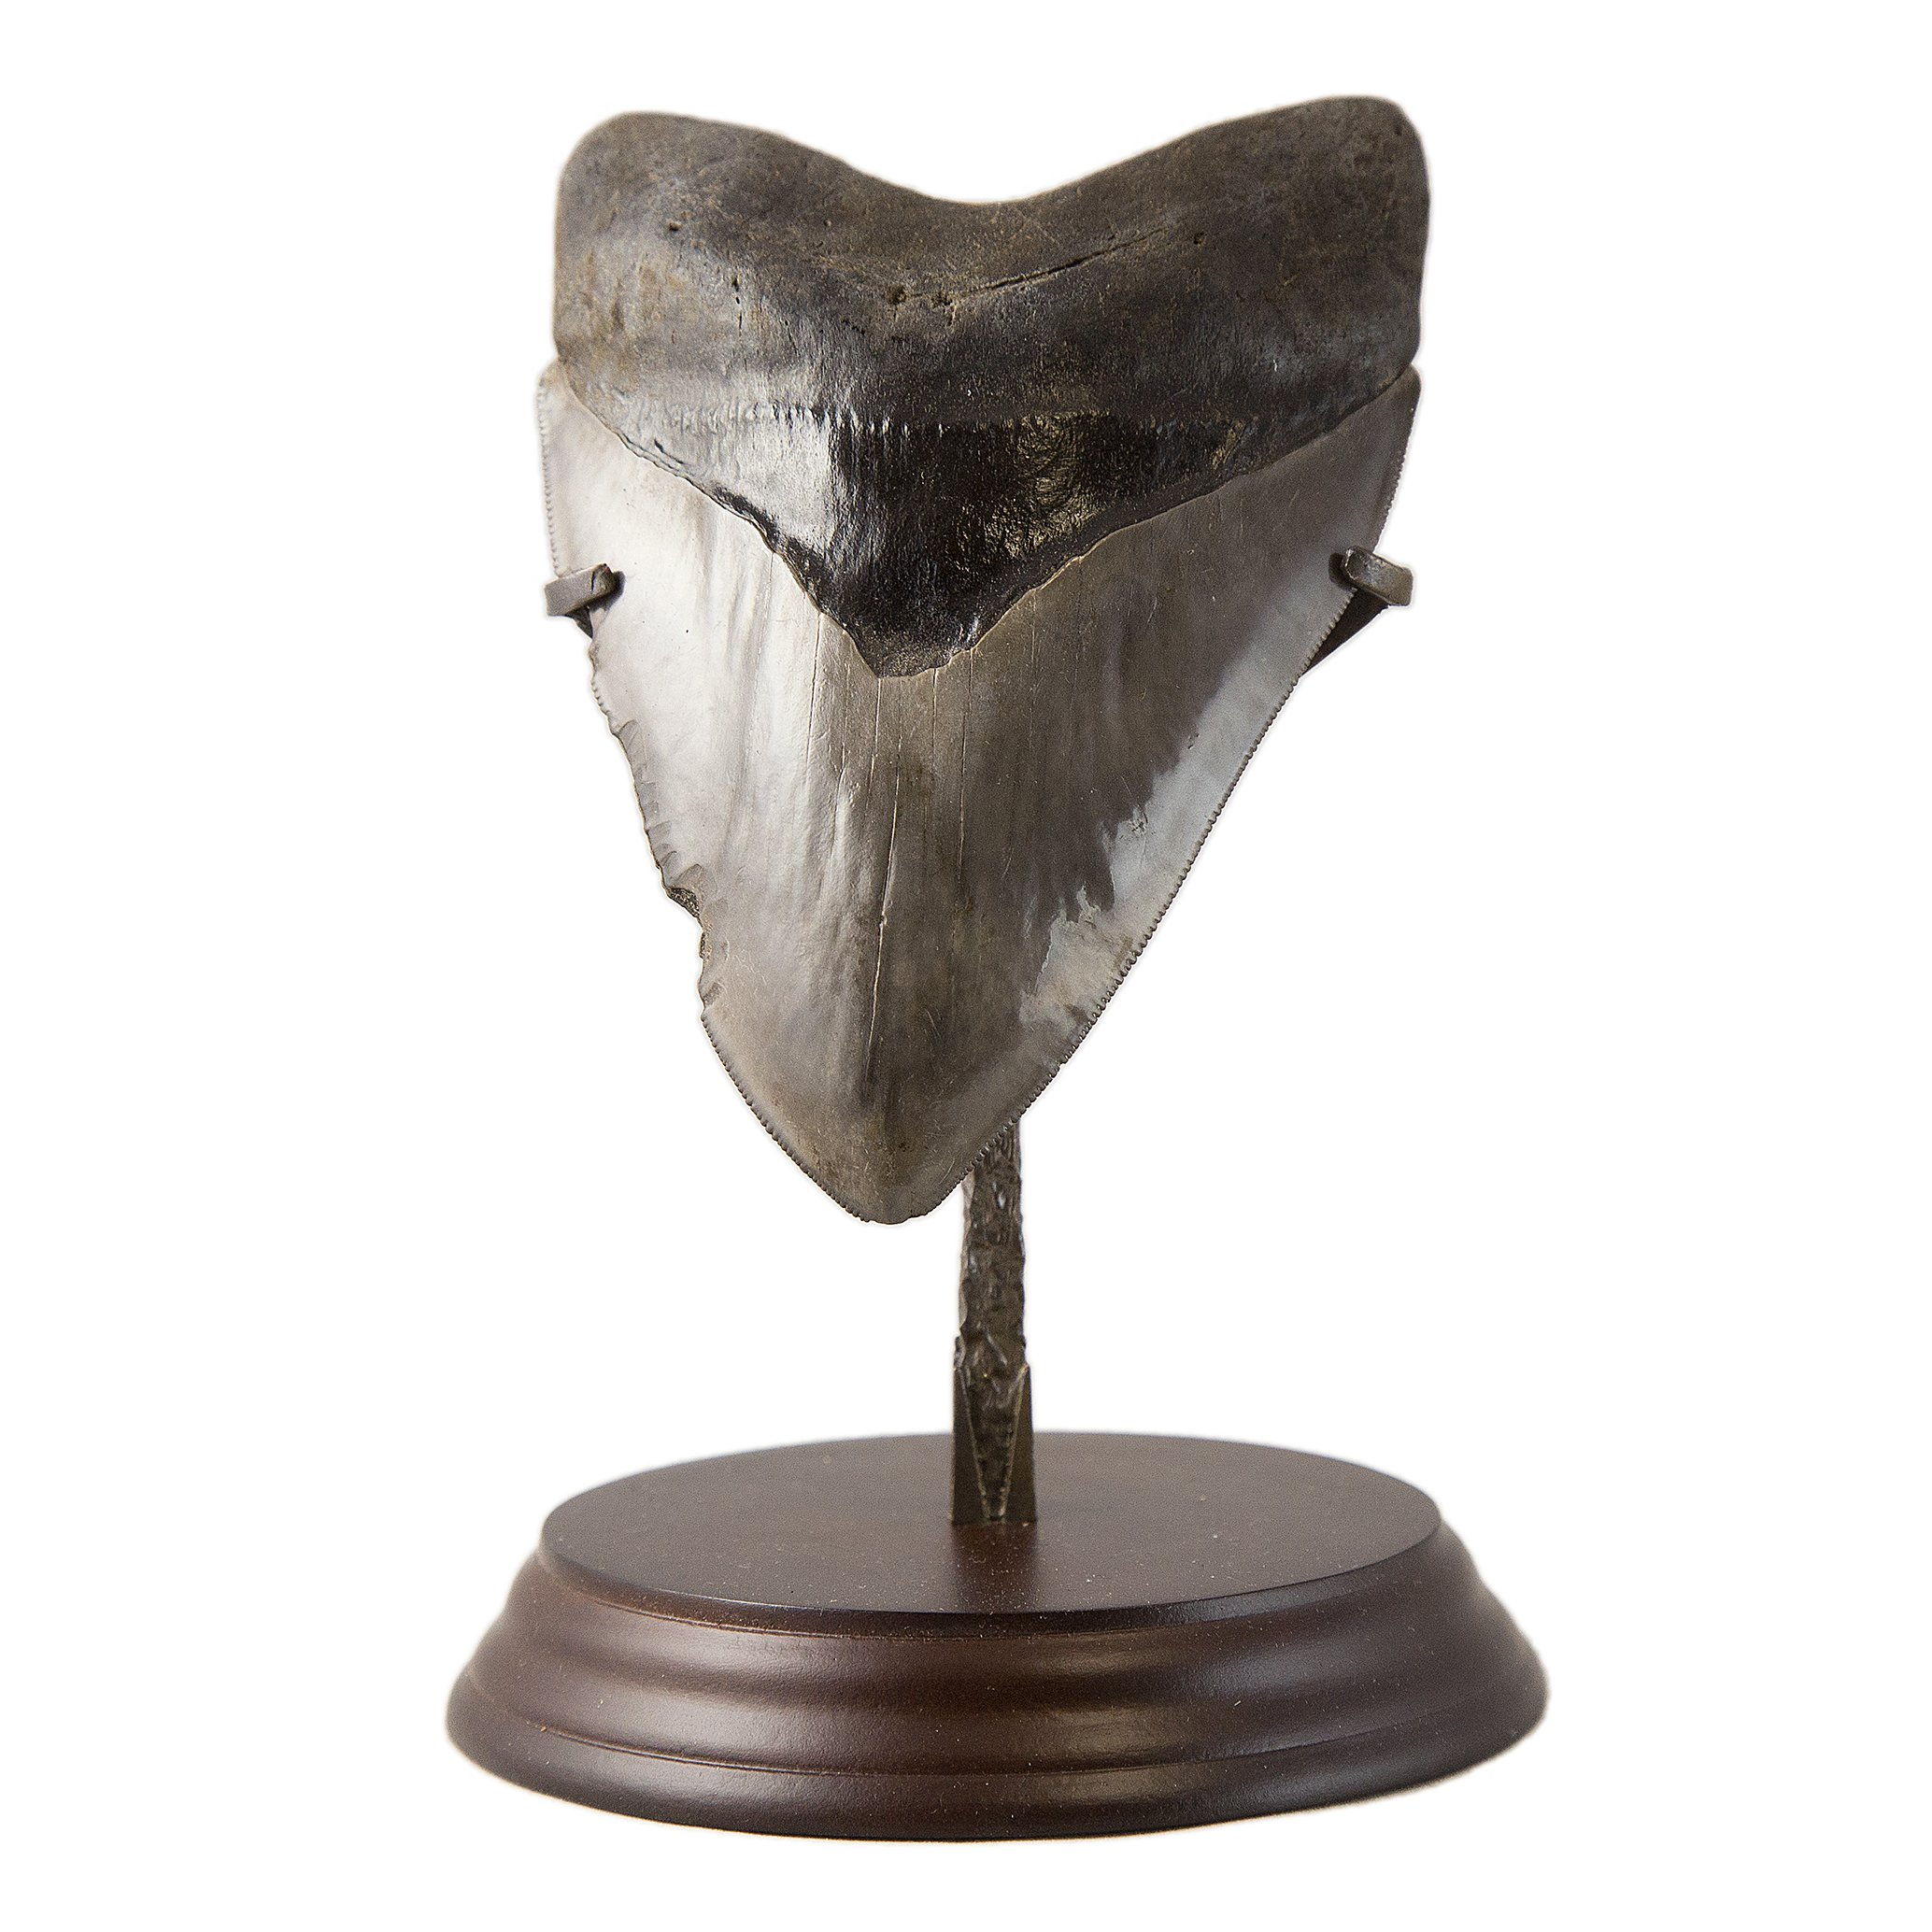 Beverly Oaks Huge Museum Quality Real Megalodon Tooth Fossil - Giant Shark Tooth (5 1/2 inch)